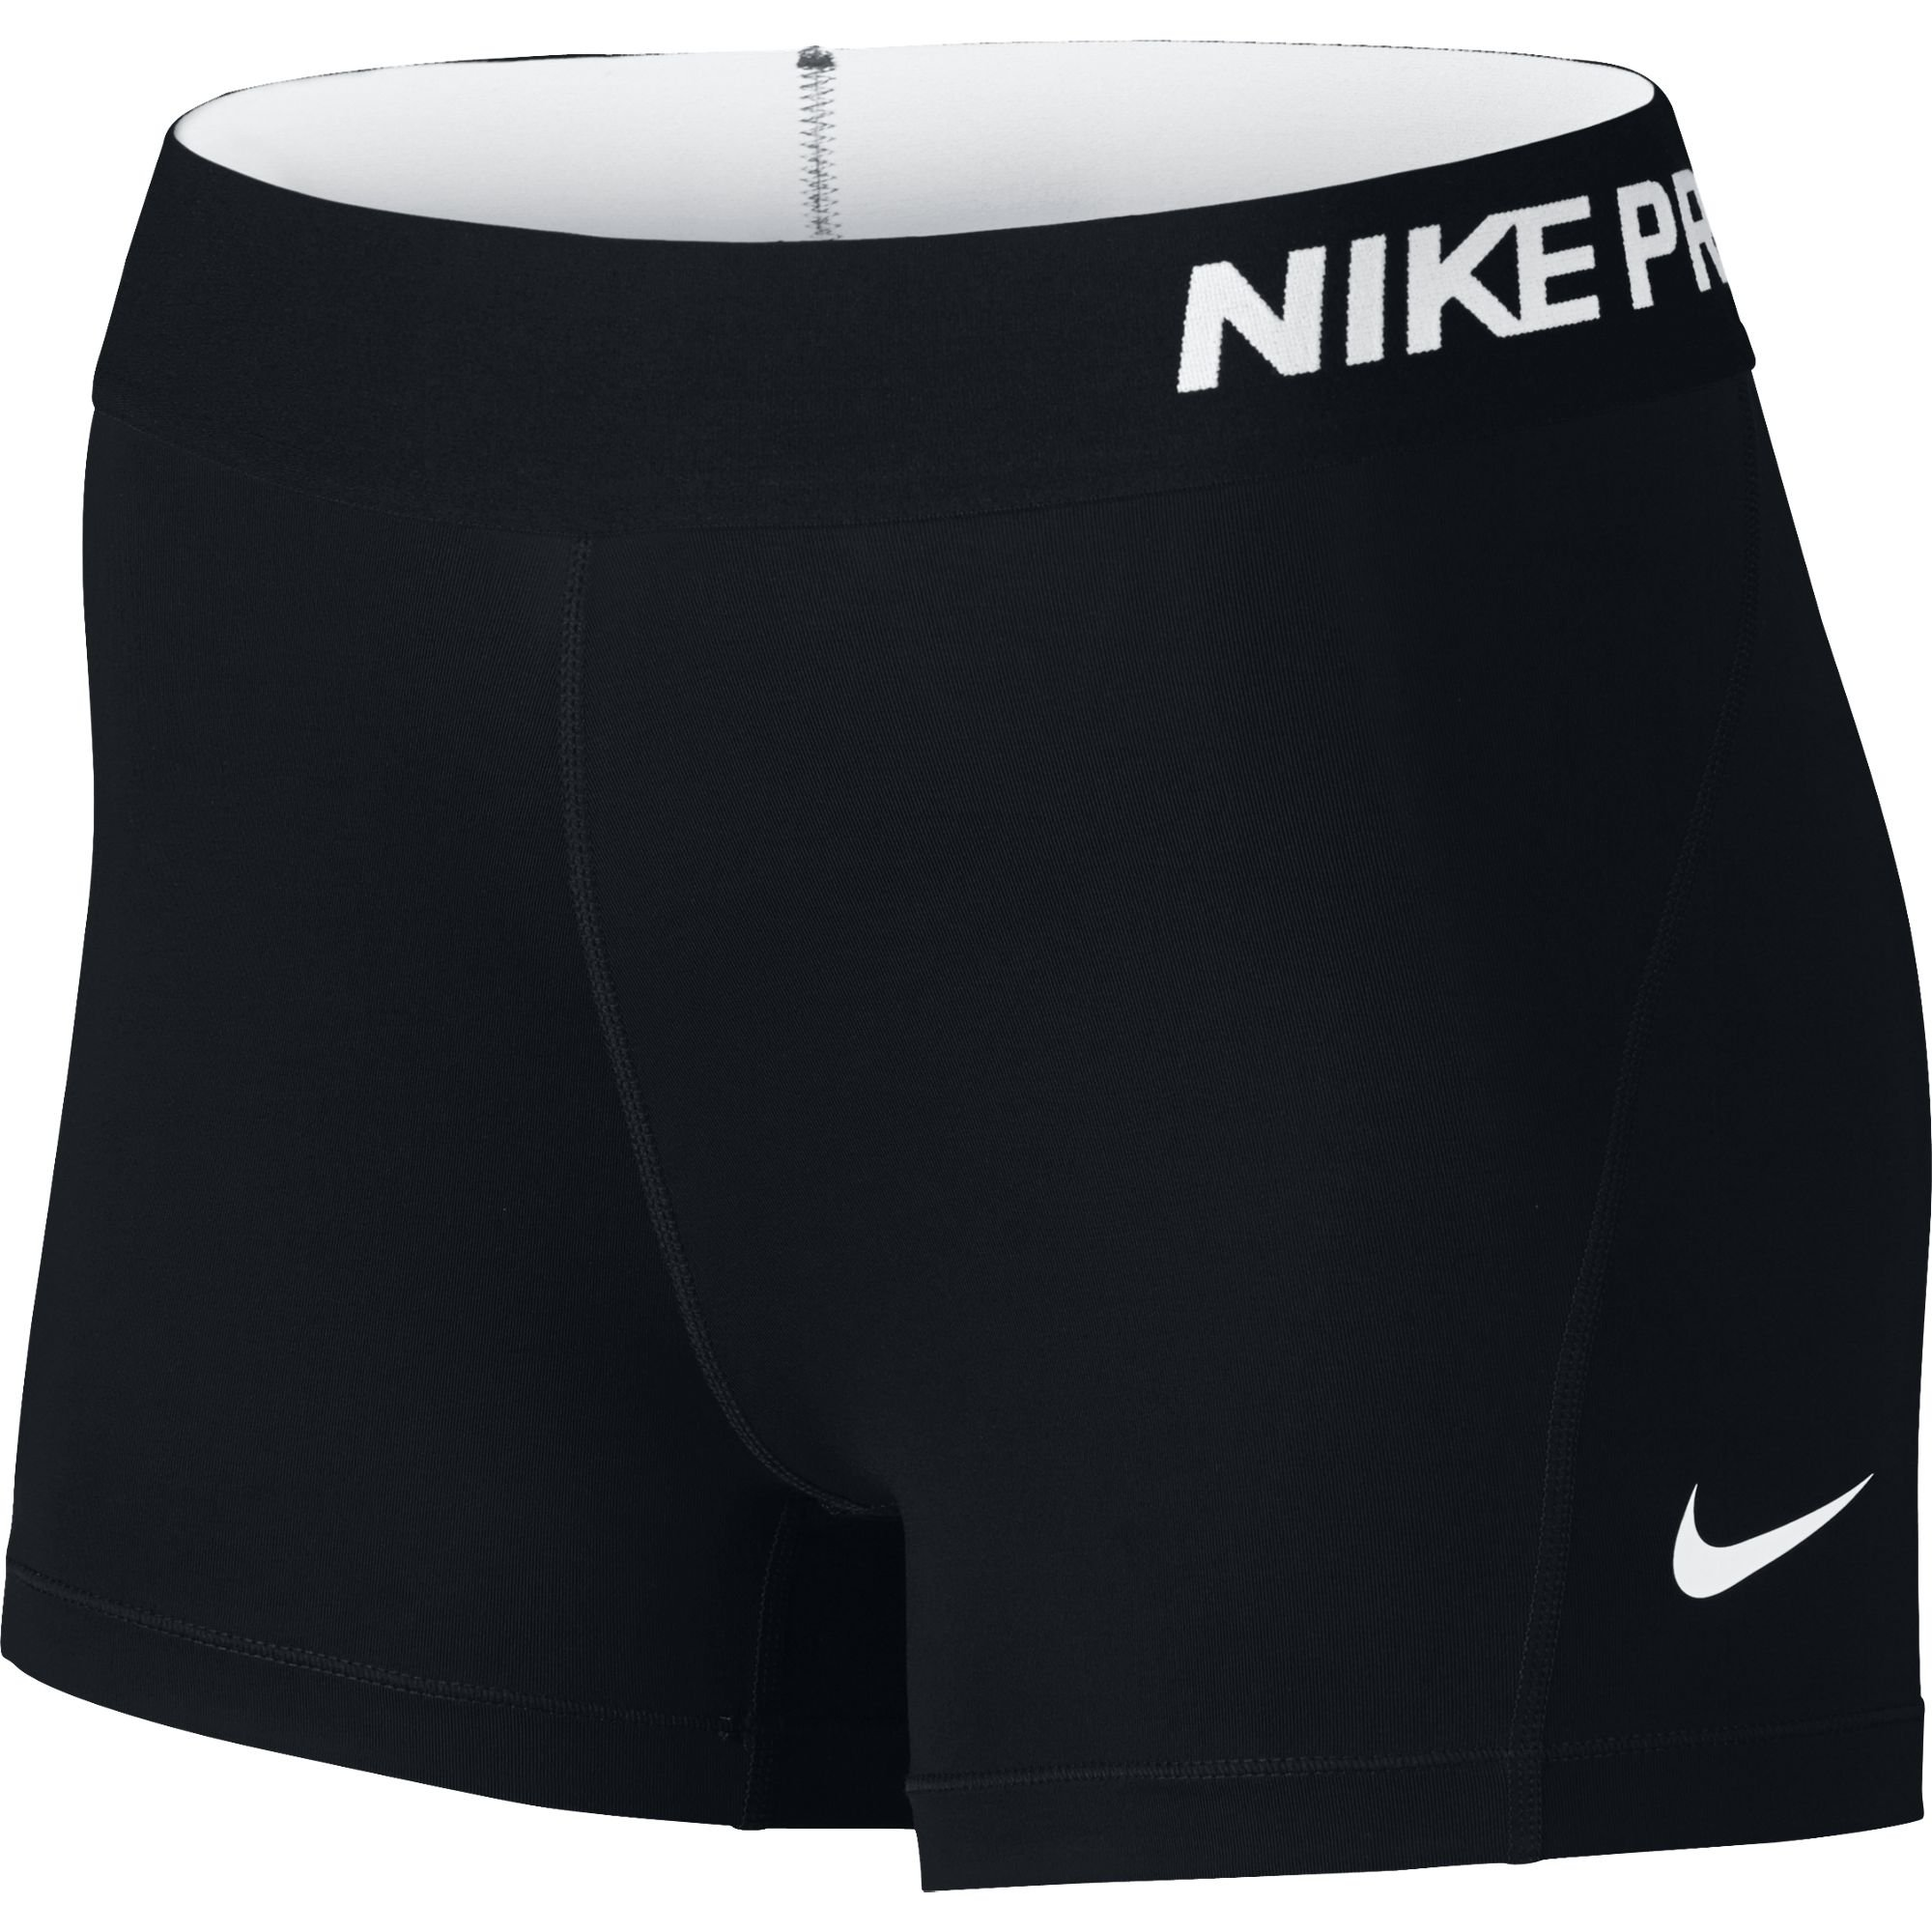 NIKE Women's Pro 3'' Training Shorts, Black/White, X-Small